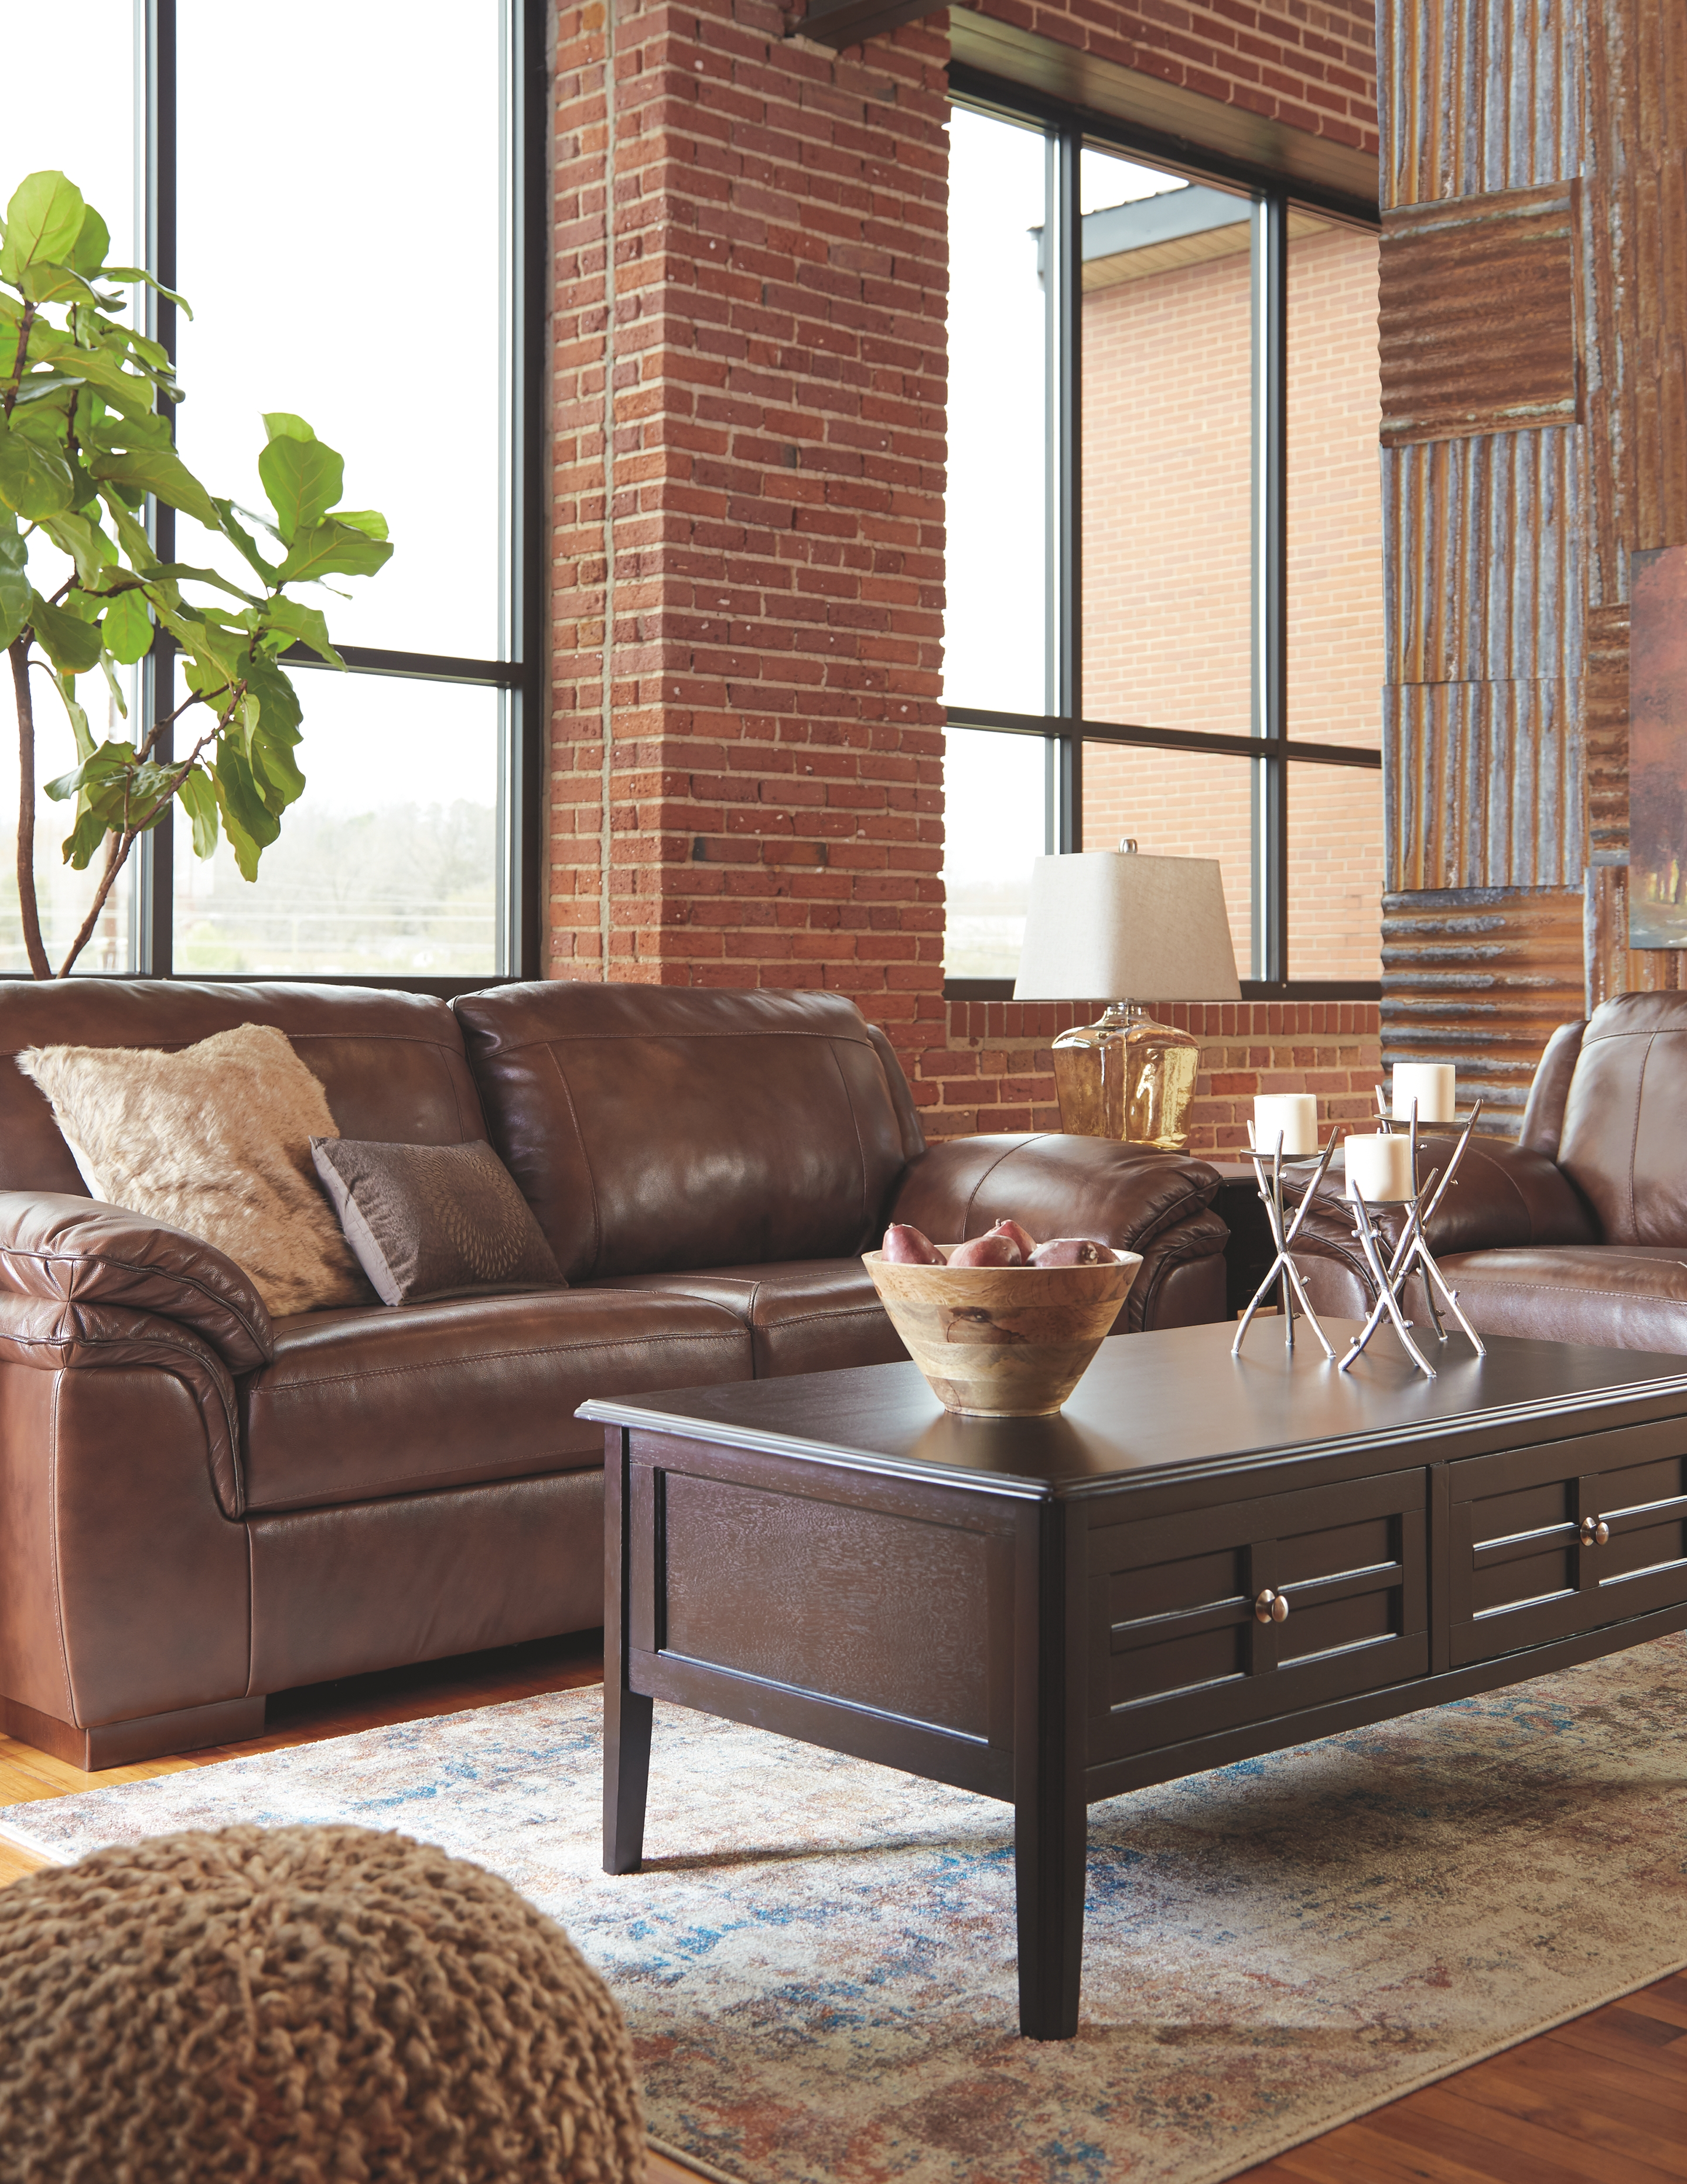 Astounding Islebrook Sofa Canyon Leather Products In 2019 Spiritservingveterans Wood Chair Design Ideas Spiritservingveteransorg